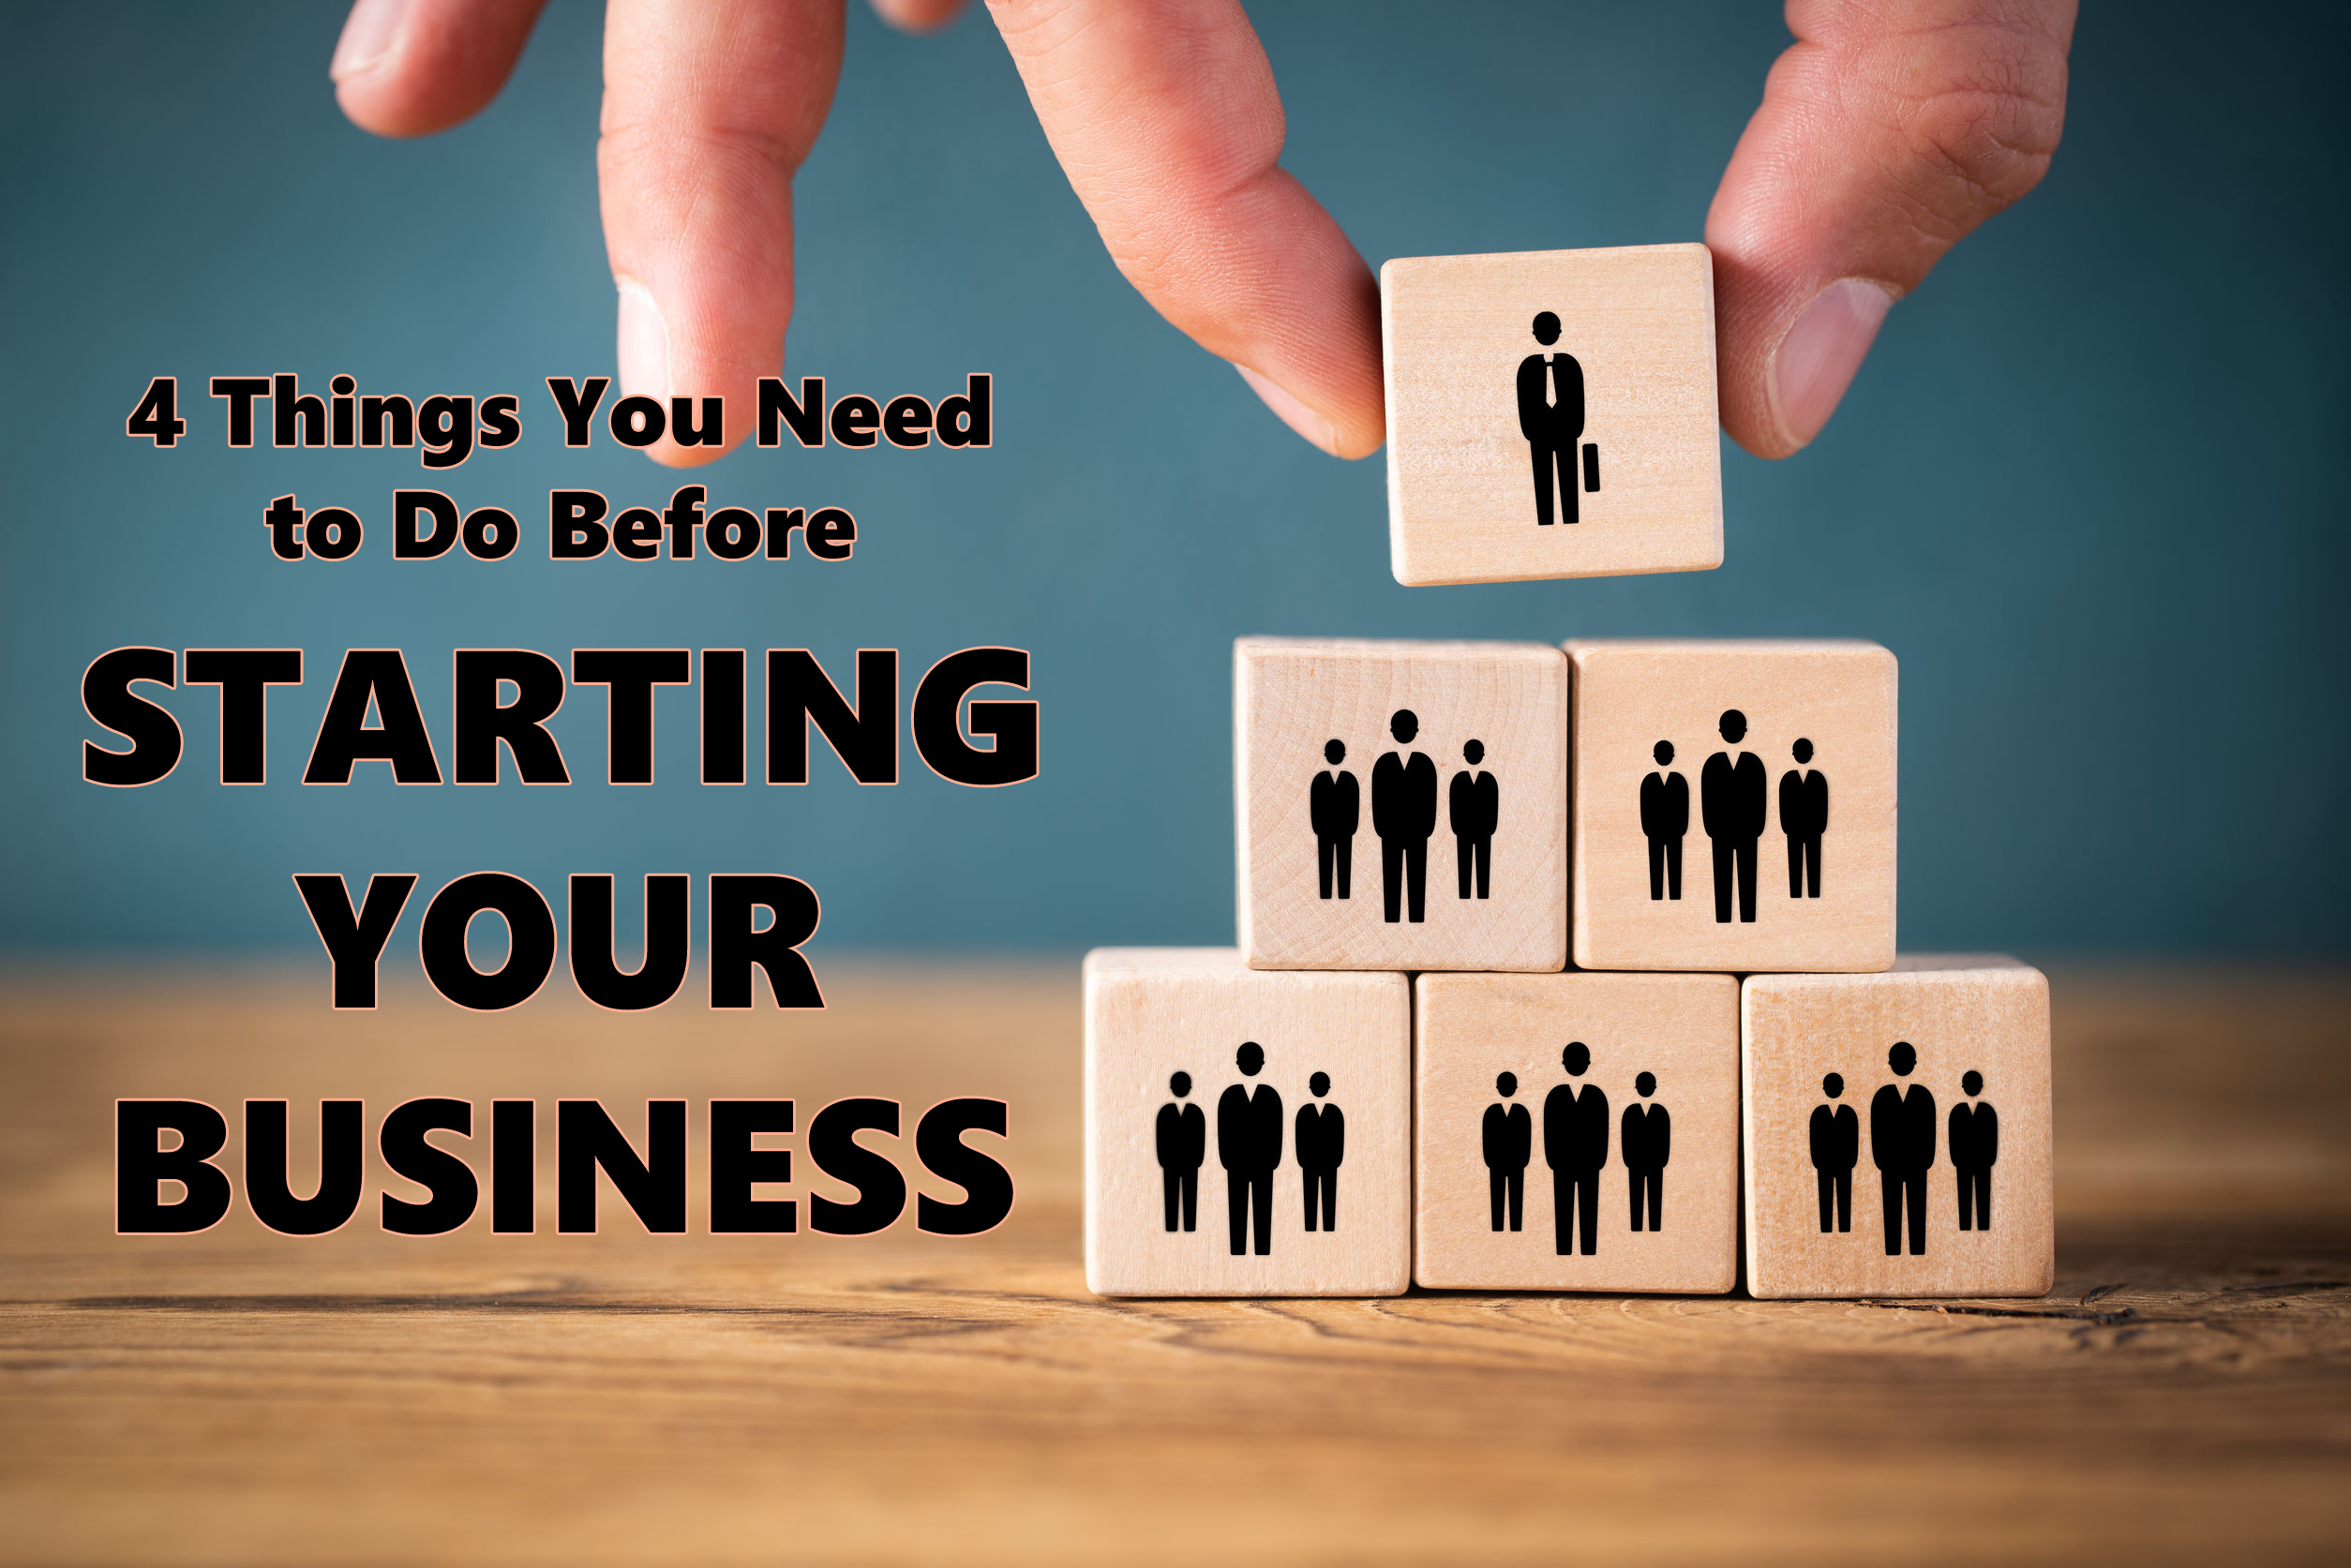 Keeping it Legal: 4 Things You Need to Do Before Starting Your Business